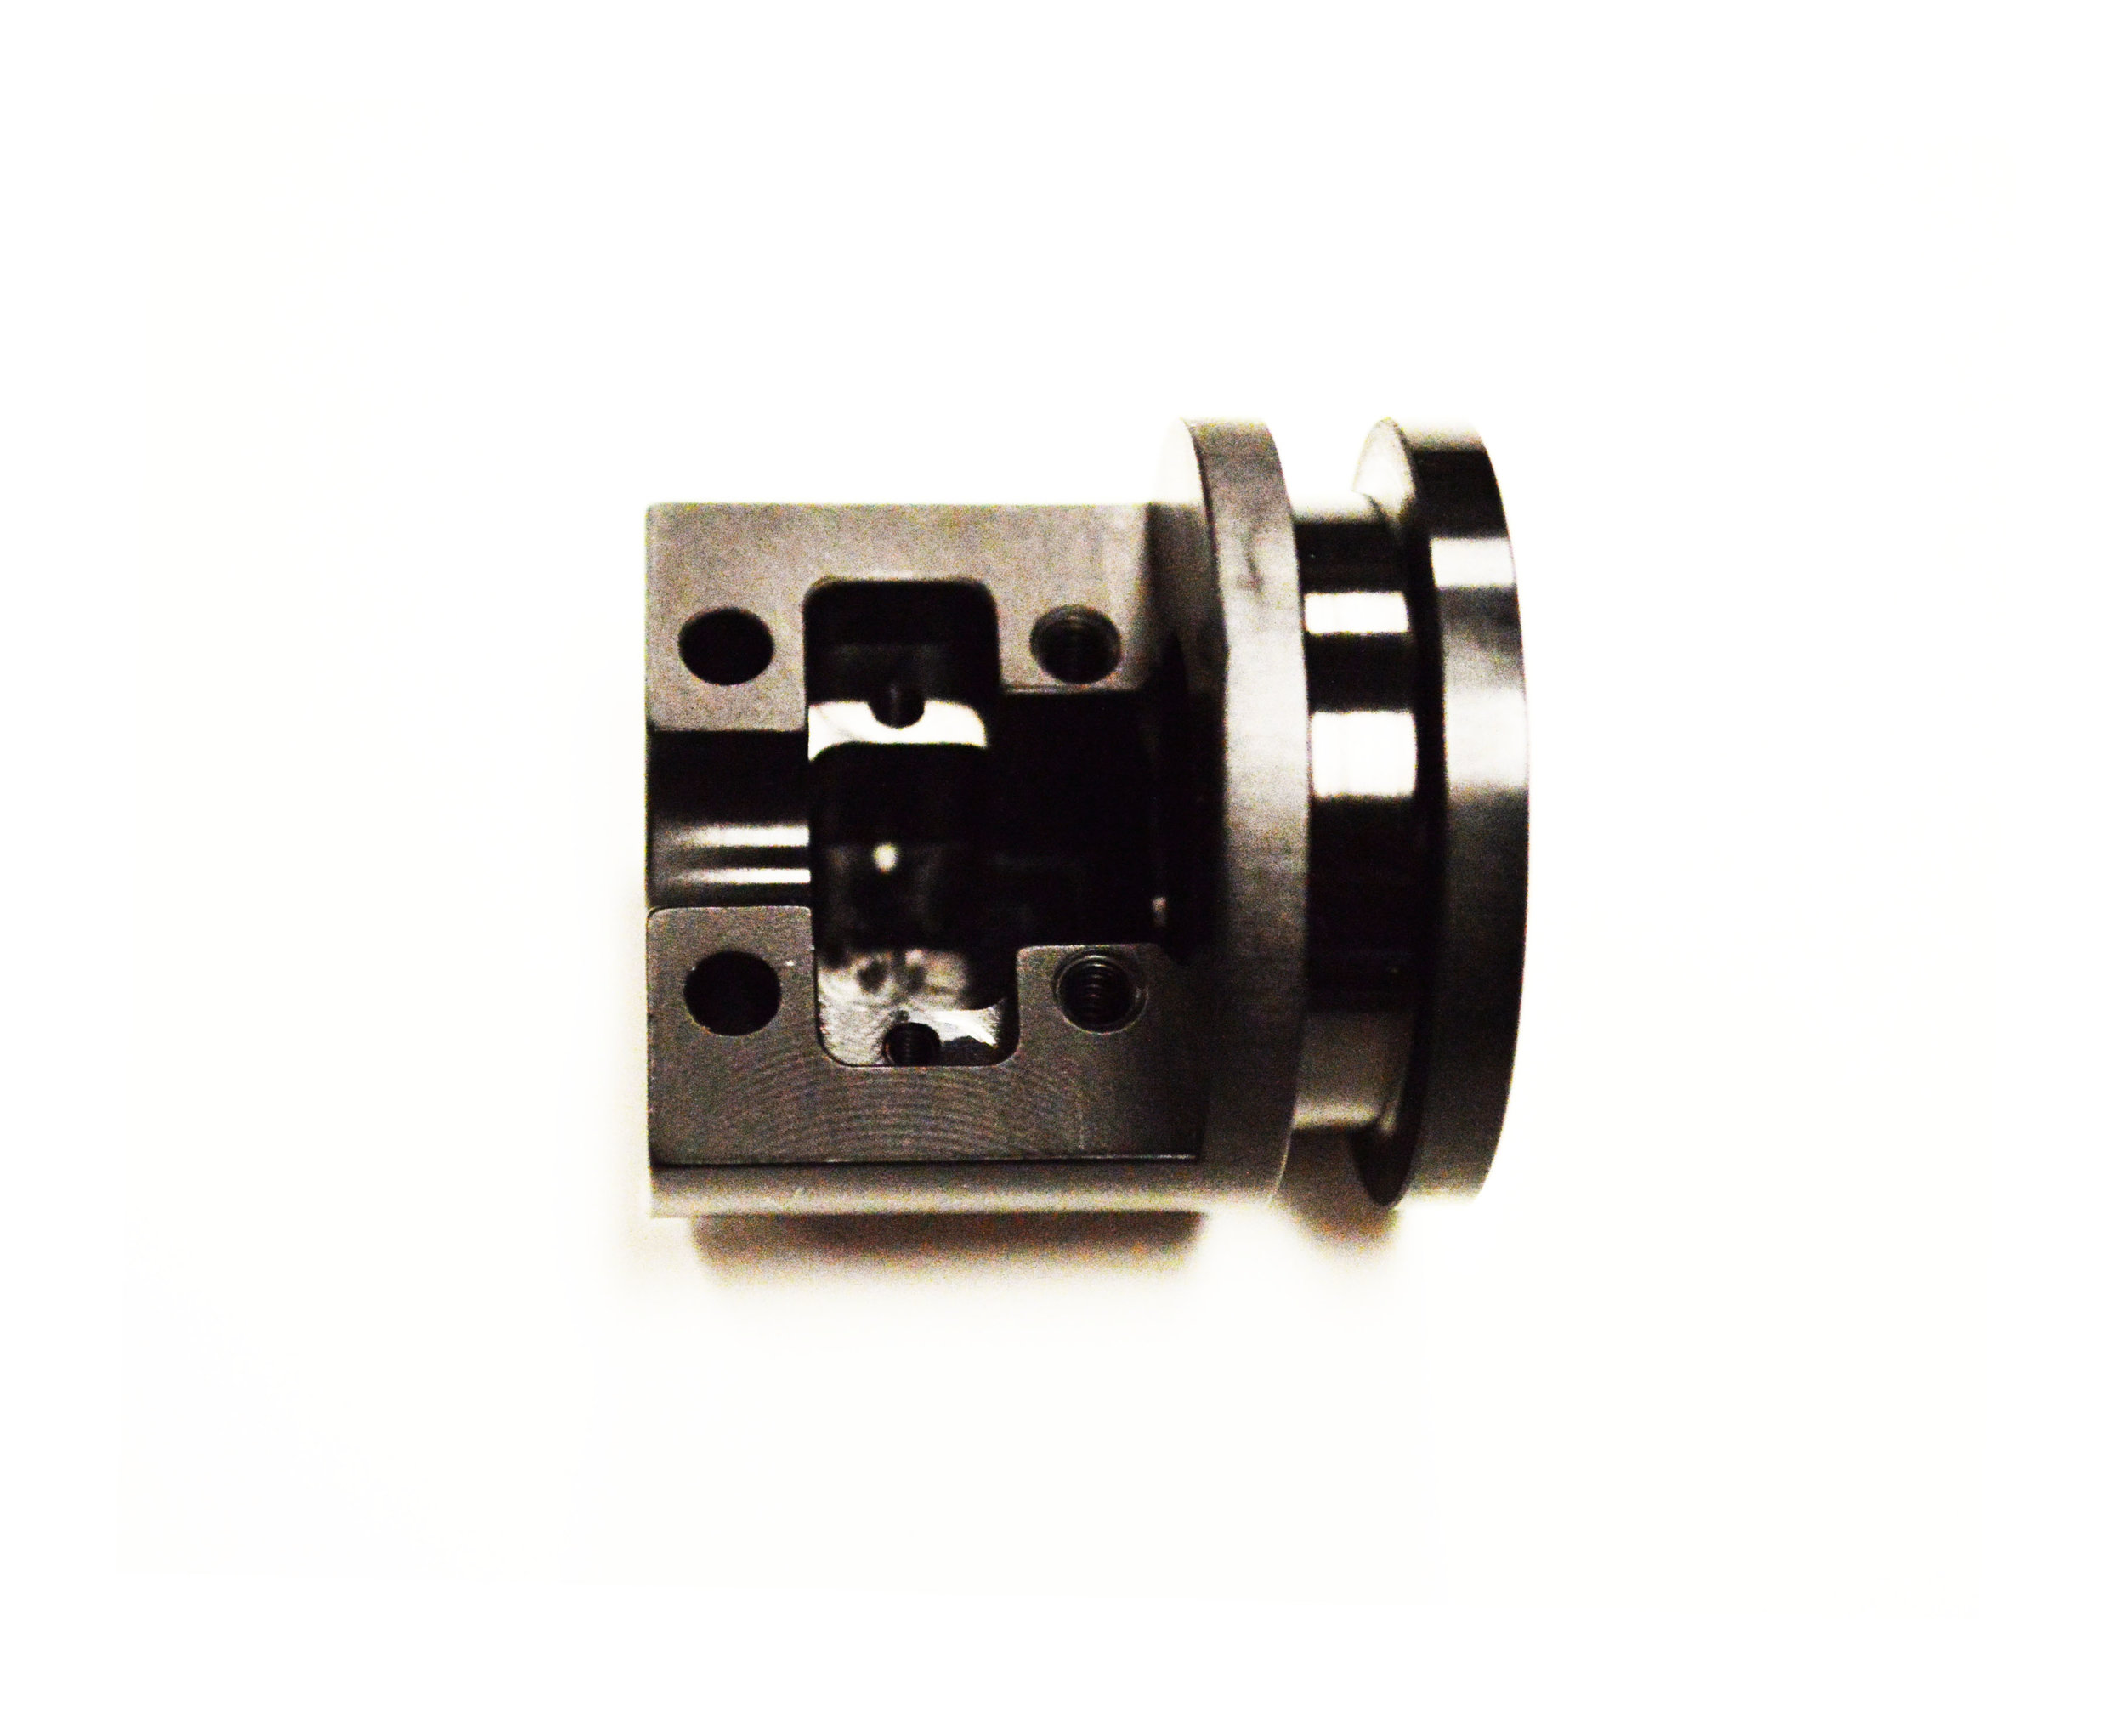 Battery Pigtail Adapter            SMS-5562